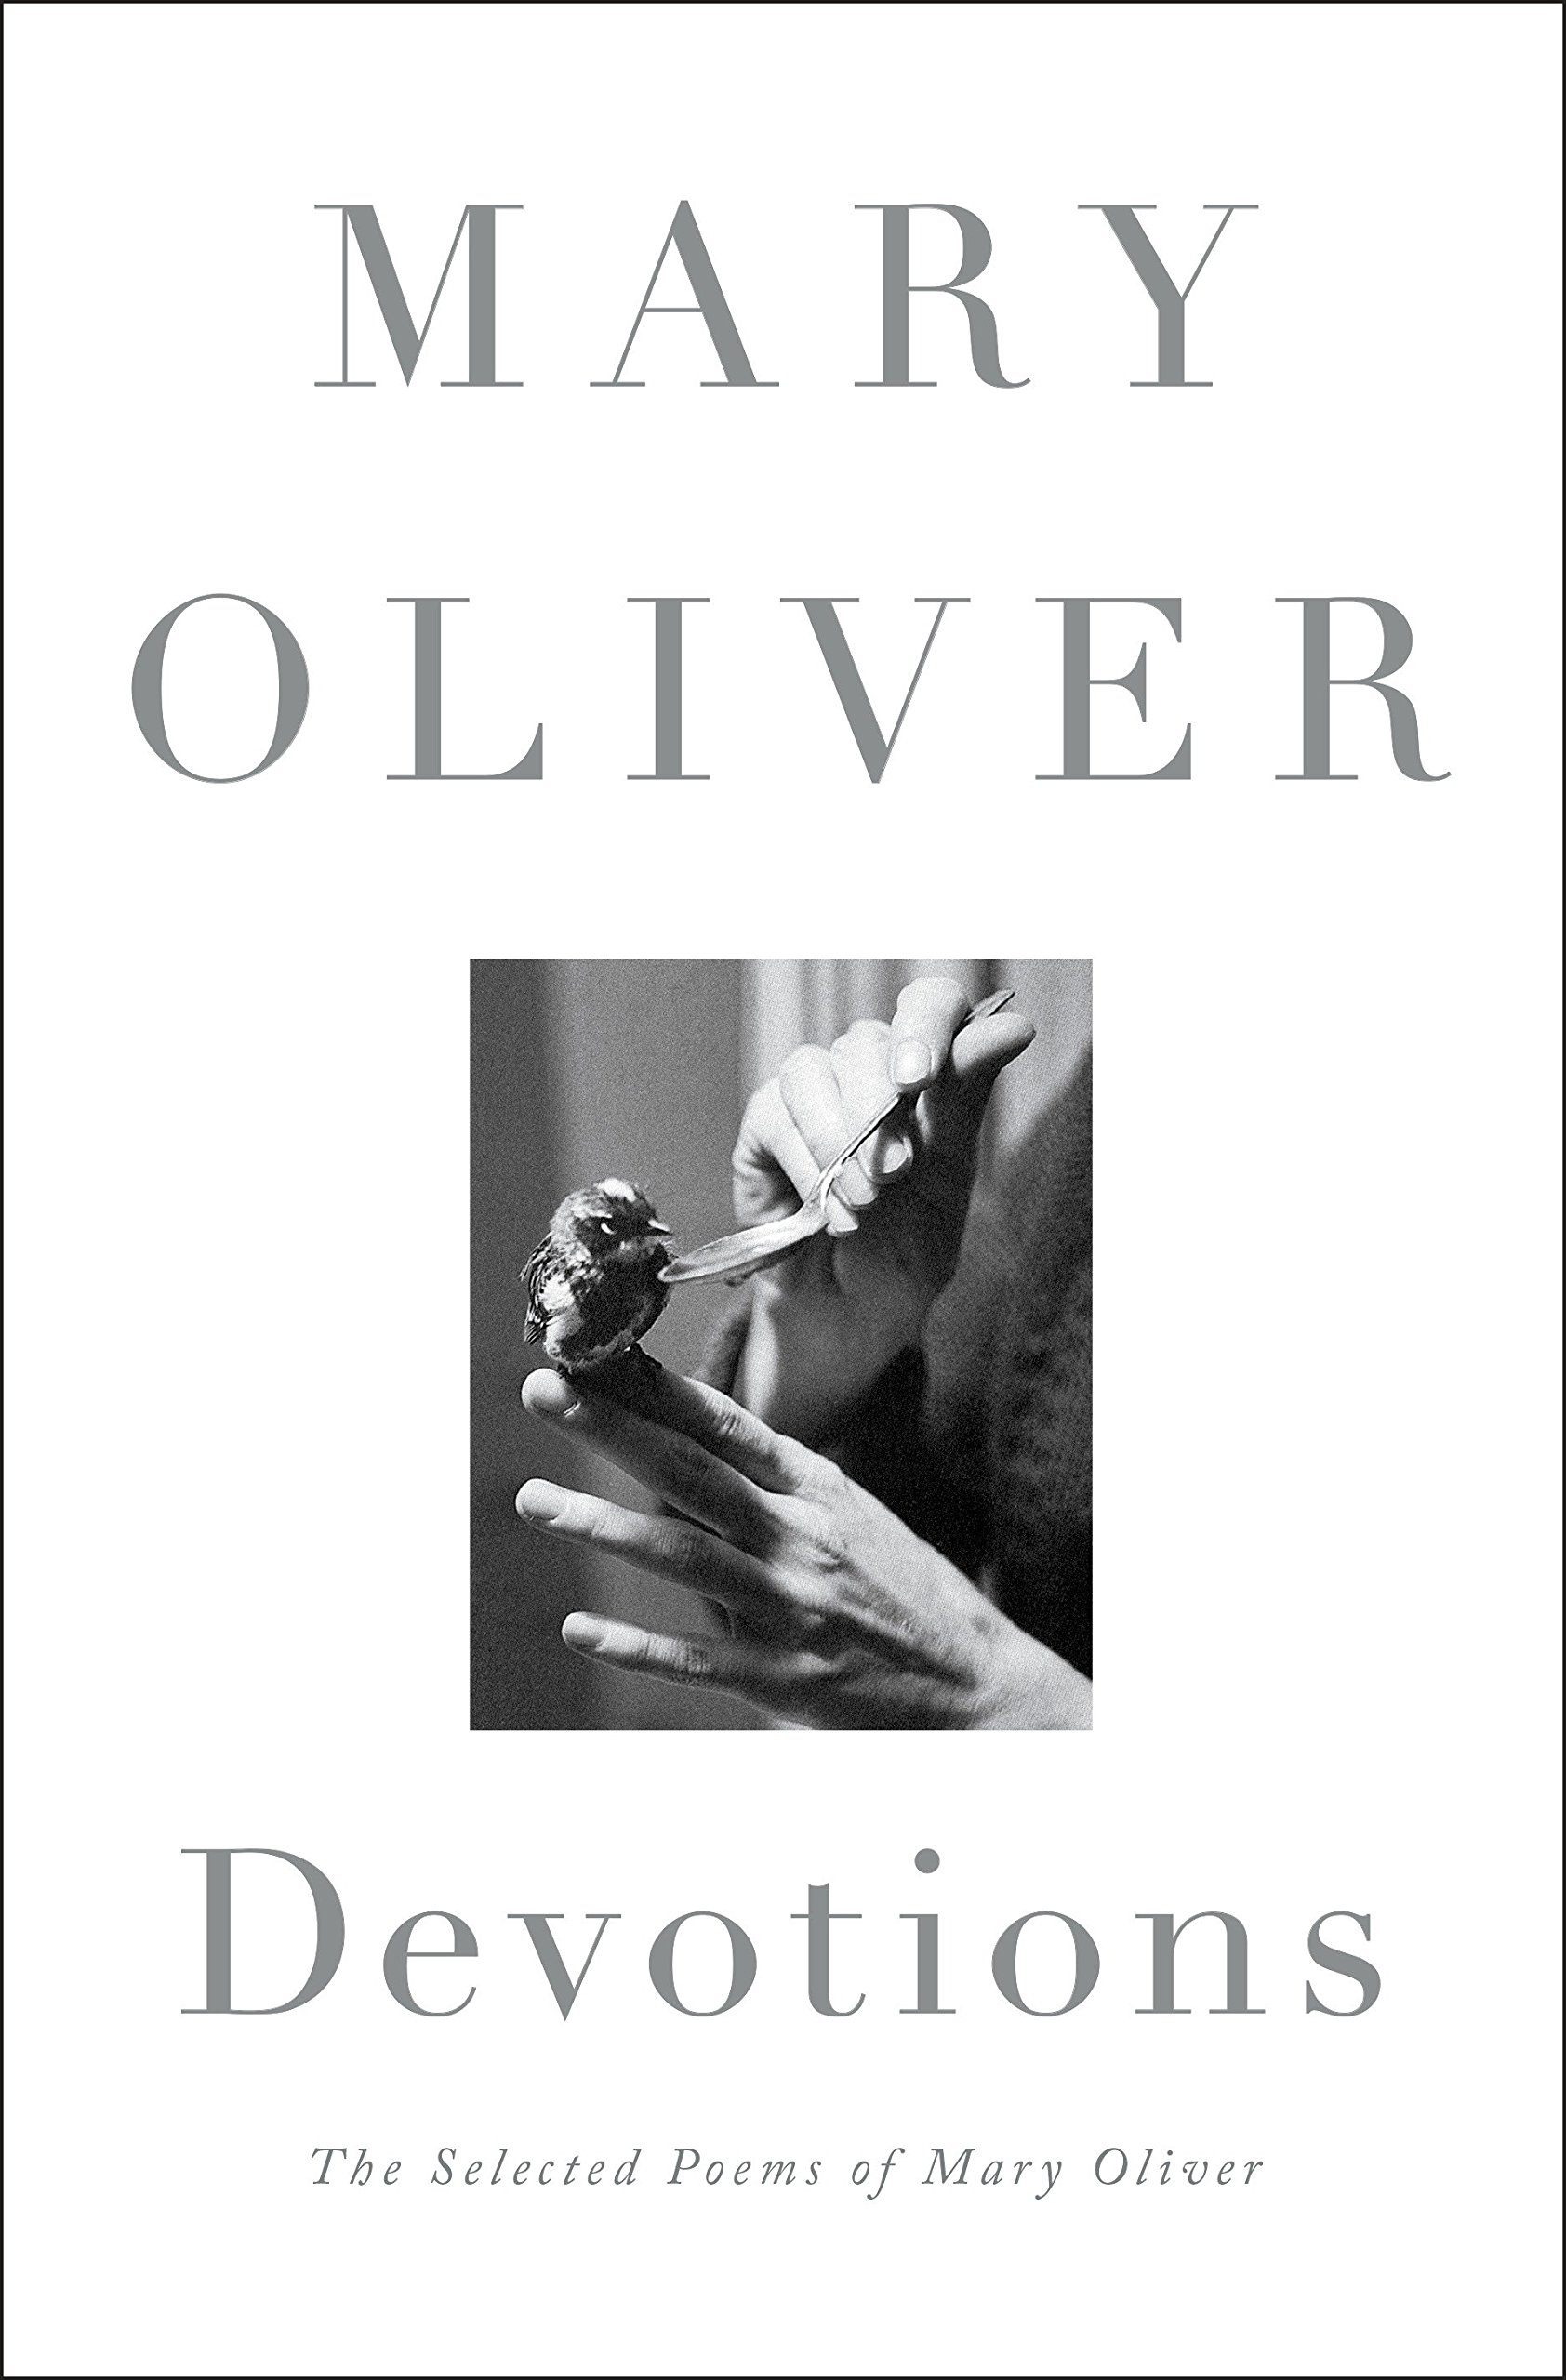 Mary Oliver Devotions book cover. #maryoliver #poetry #poems #poetrybook #devotions